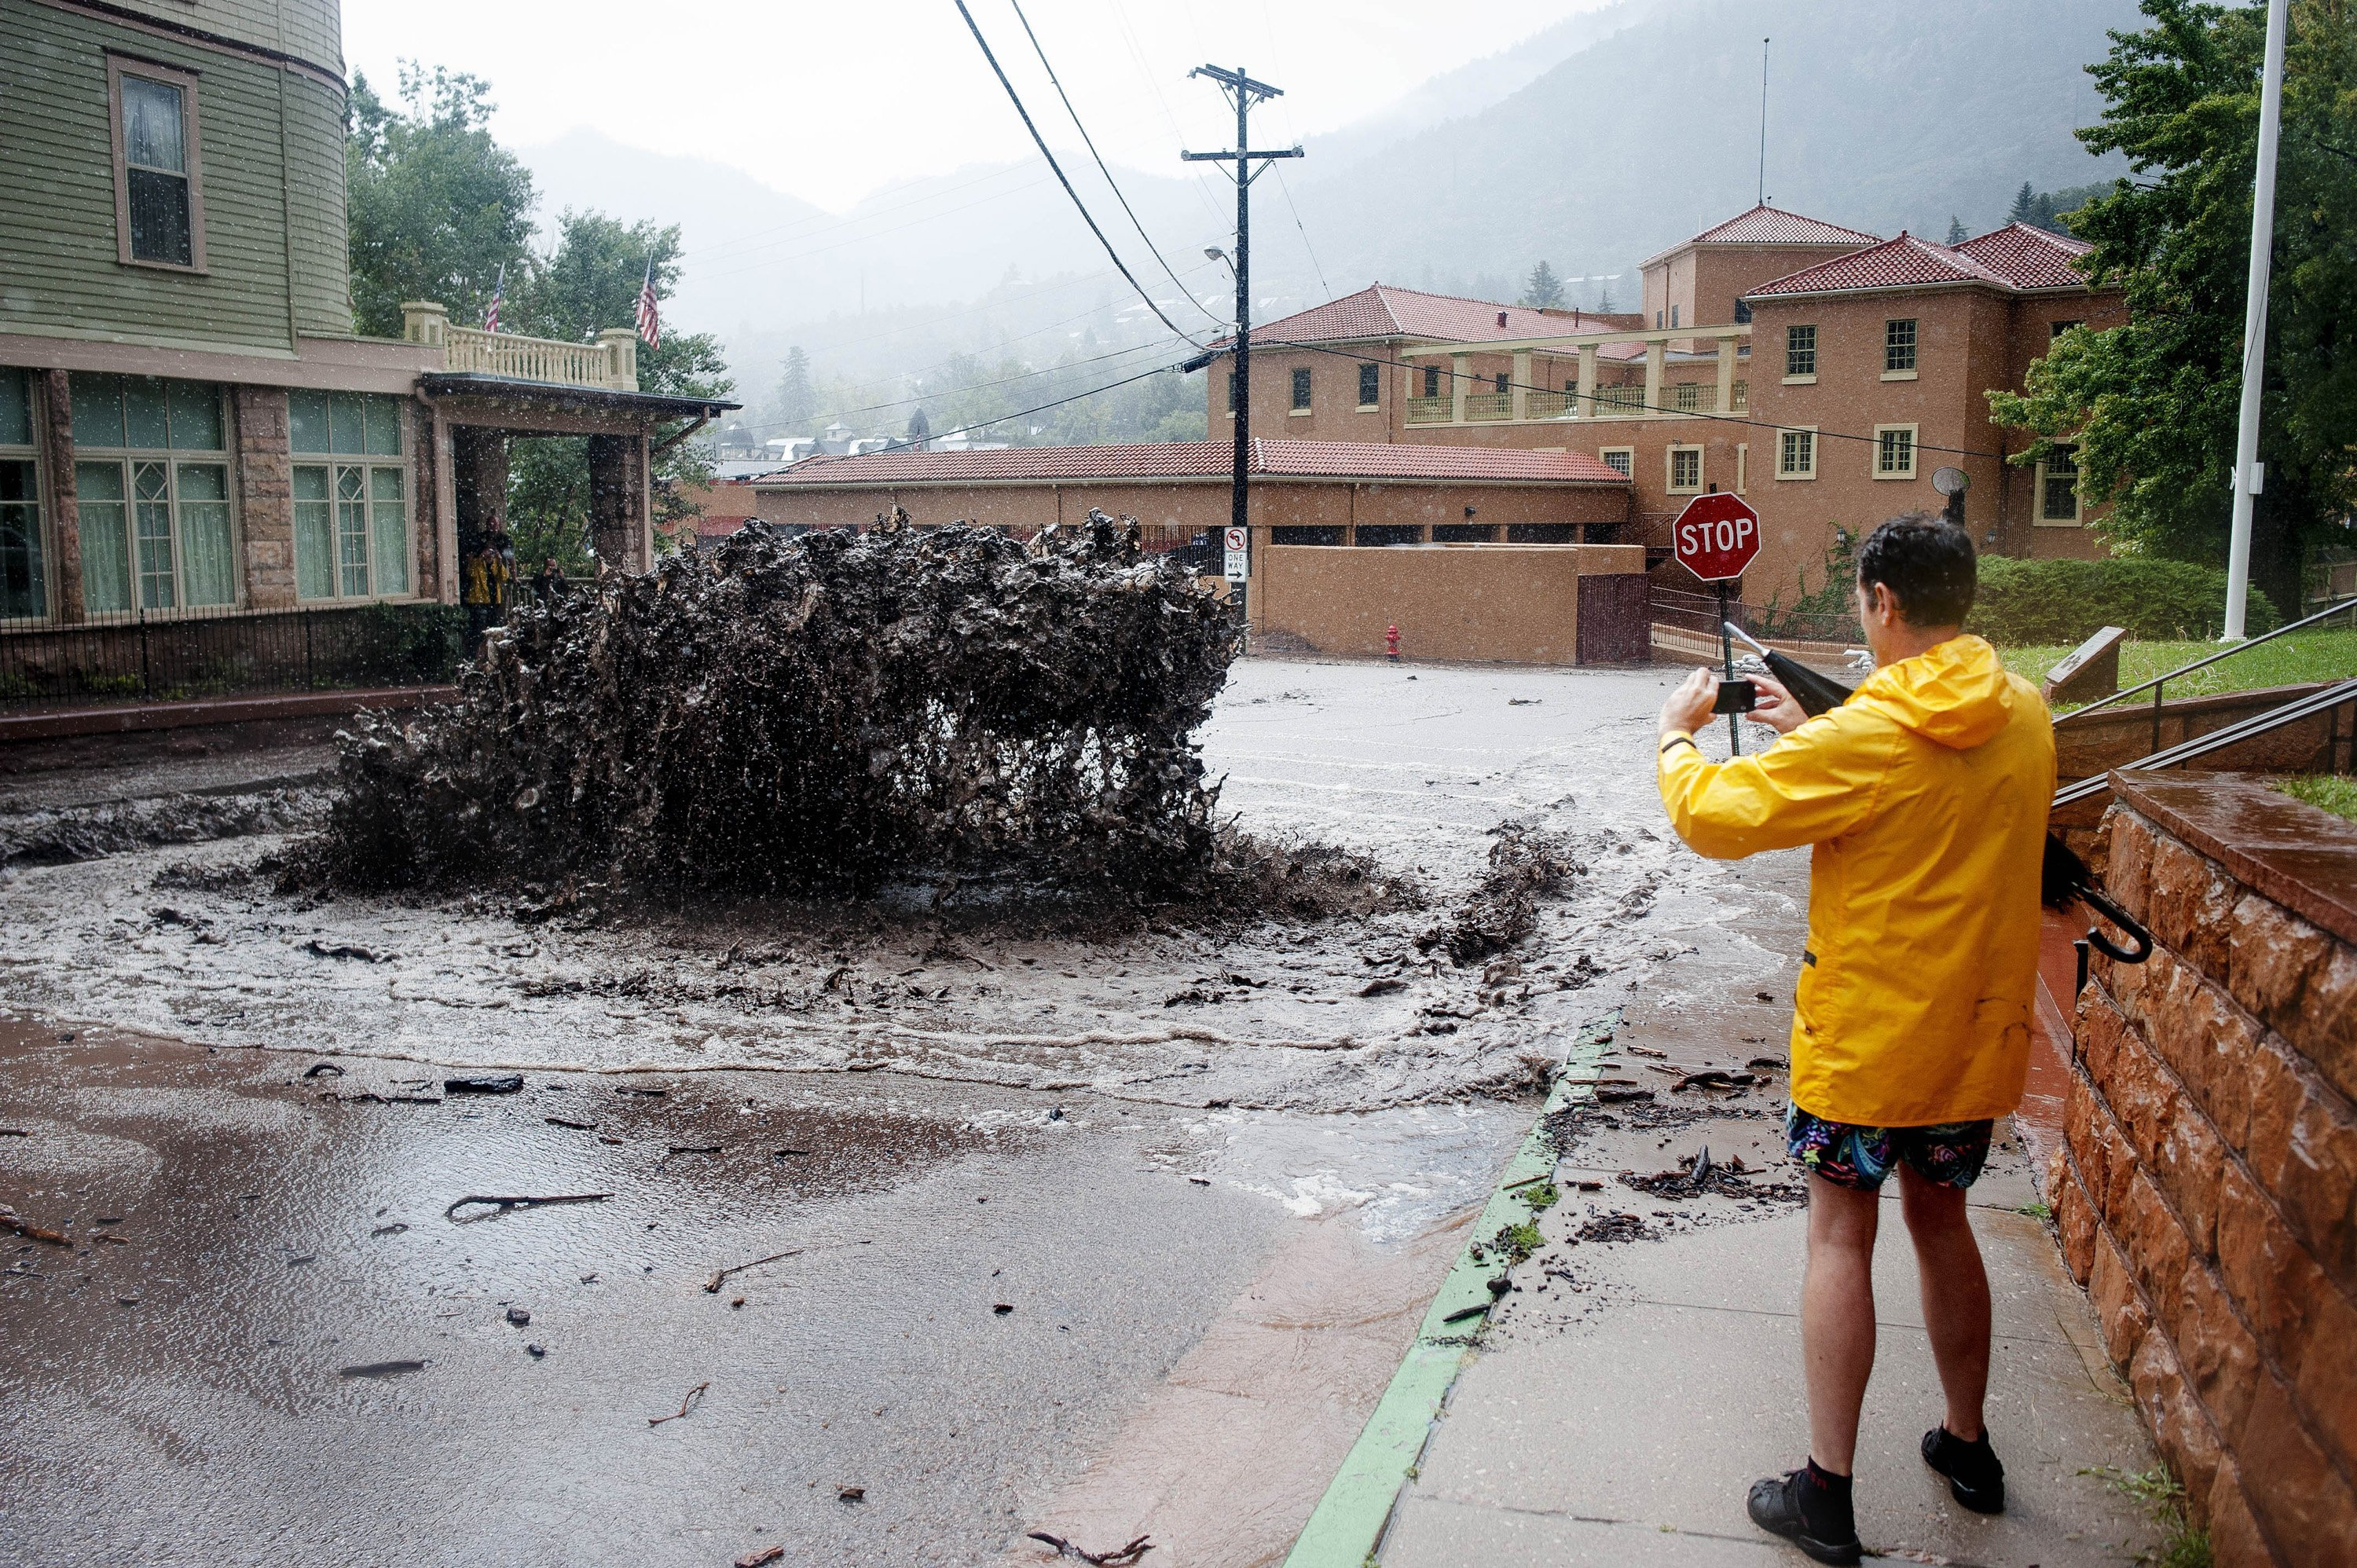 John Shada takes a photo as a geyser of floodwater shoots out of a sewer in Manitou Springs.